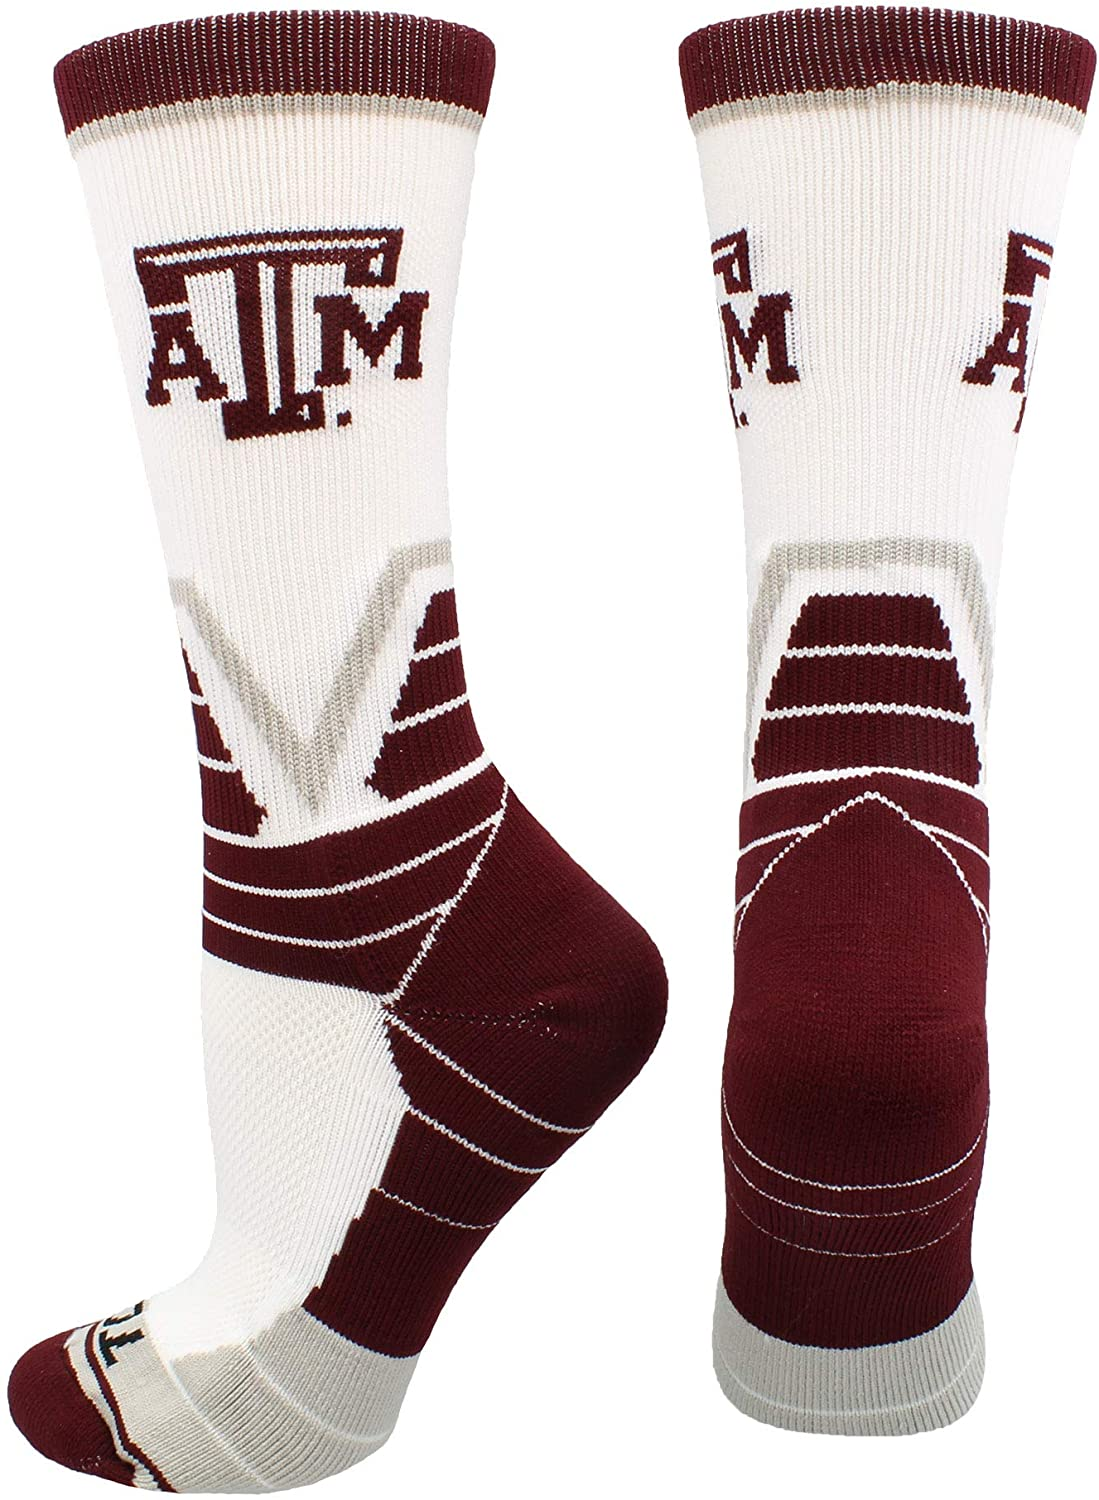 TCK Texas A&M Aggies Socks Victory Crew